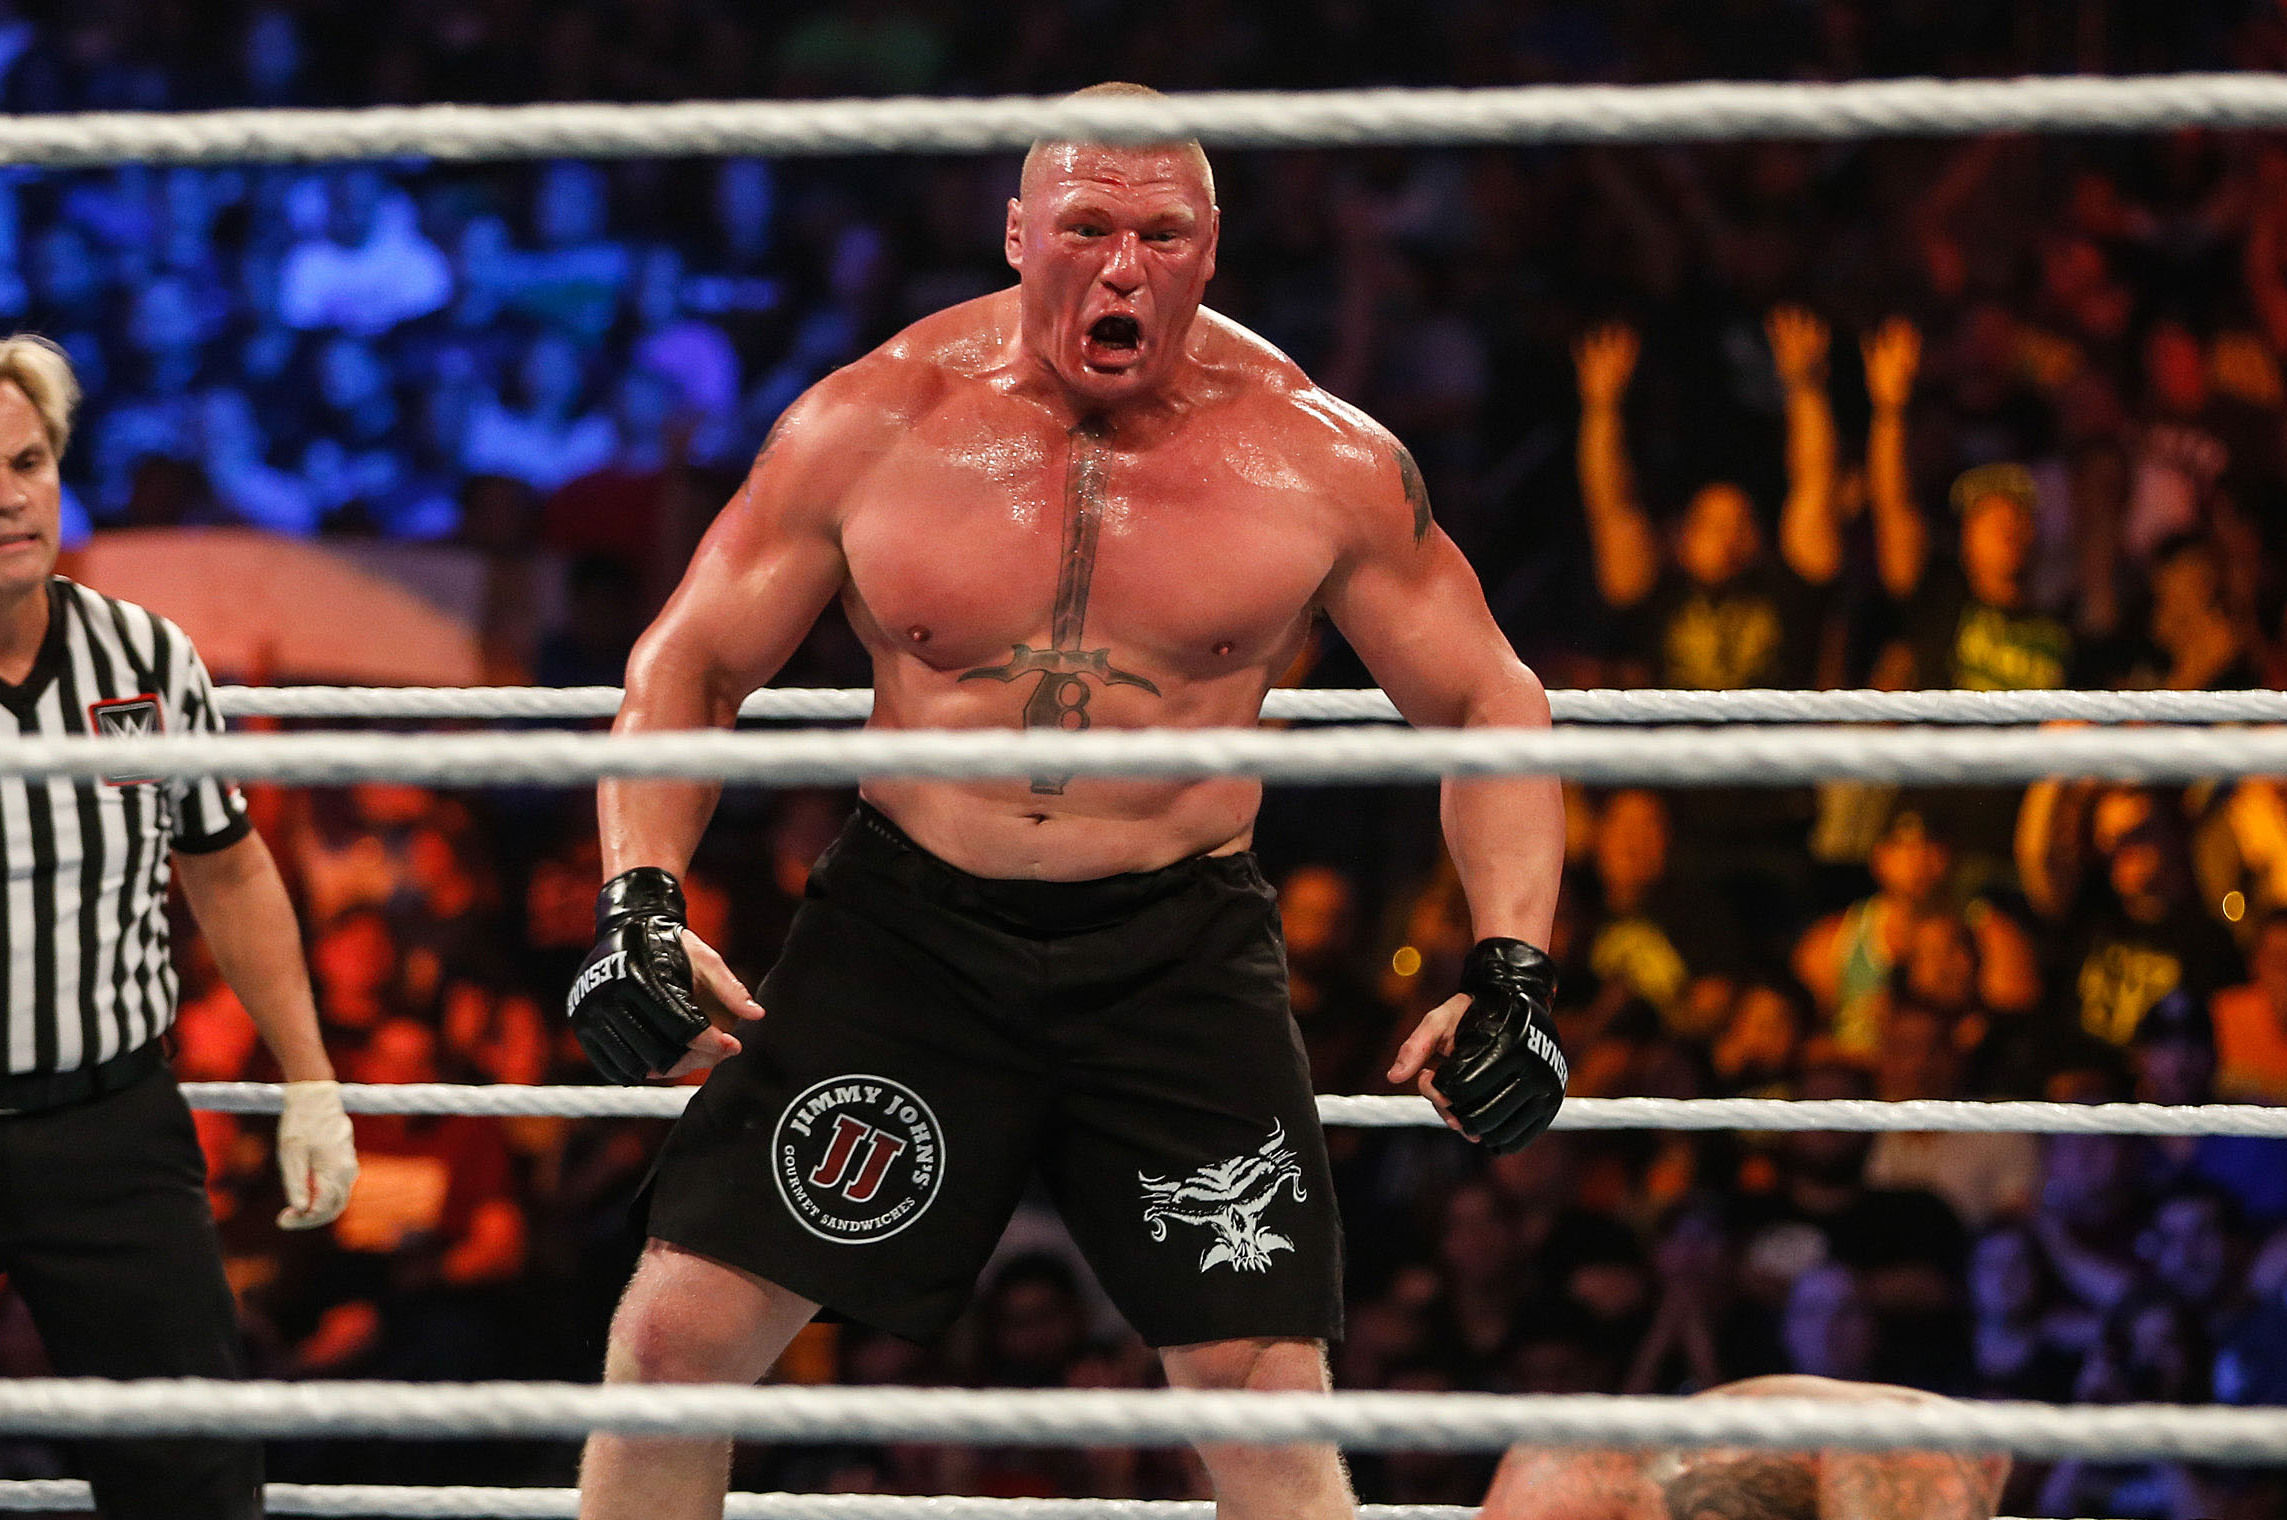 Brock Lesnar Fined For Assault On Randy Orton At Wwe Summerslam